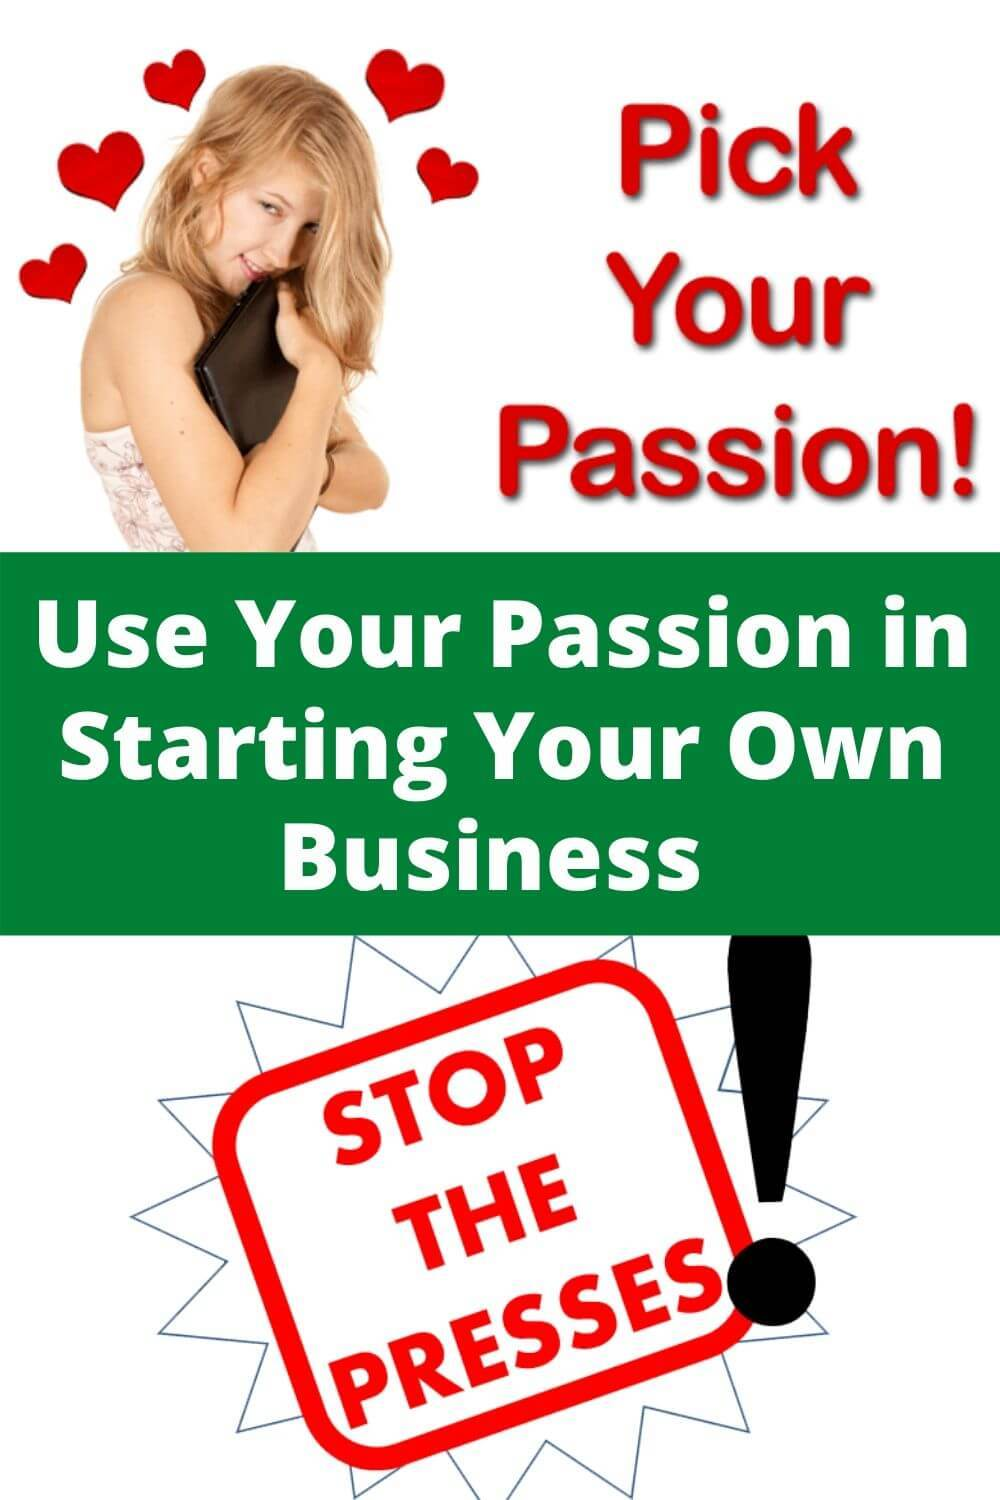 Use your passion in starting your own business